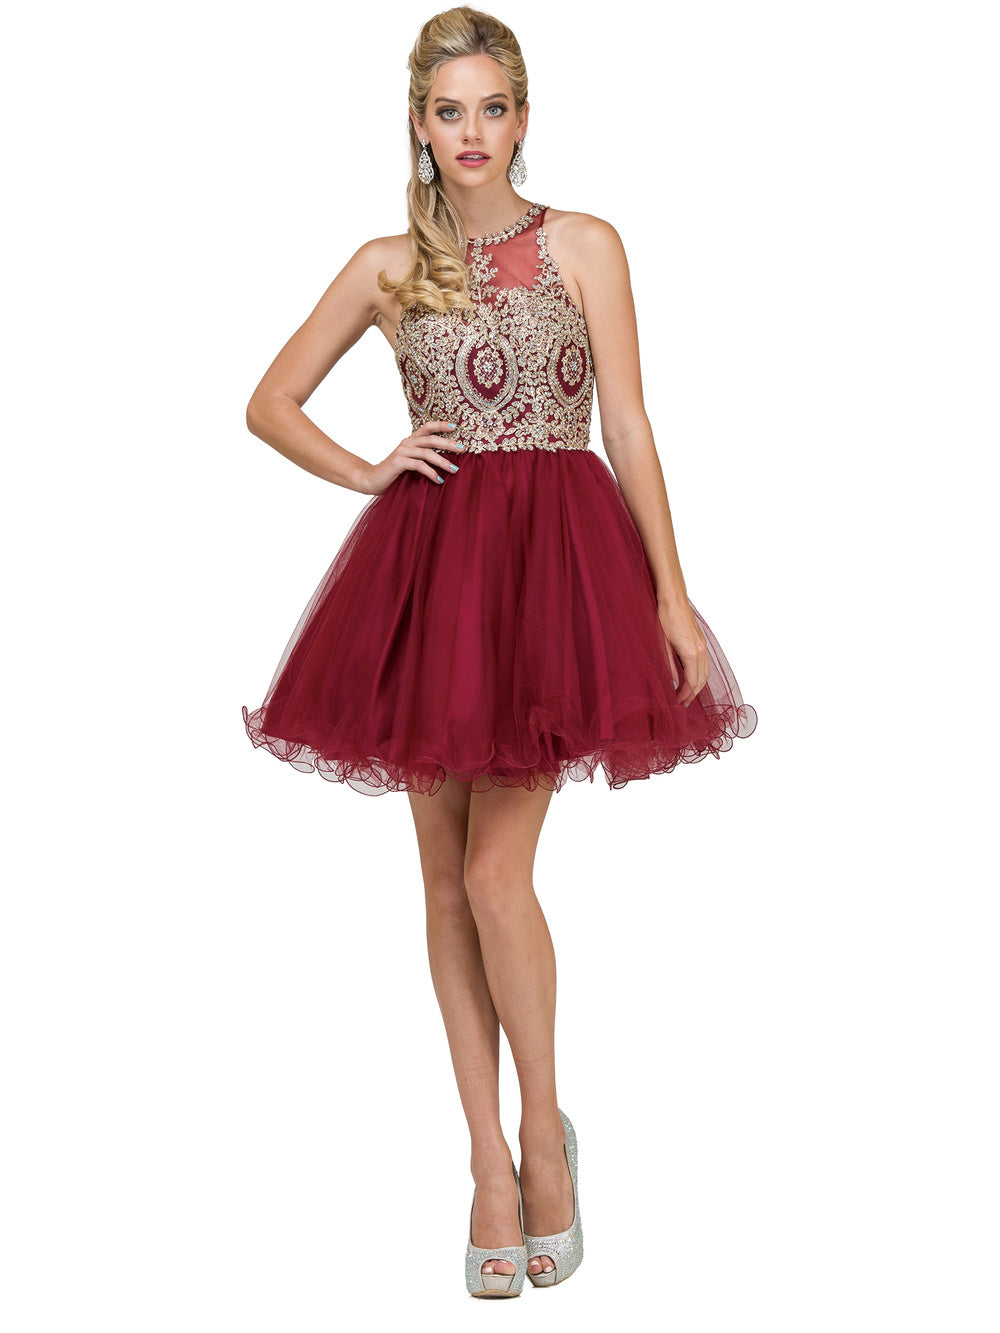 Dancing Queen DQ 2156 - Lace-Applique High-Neck Homecoming Dress - Diggz Prom